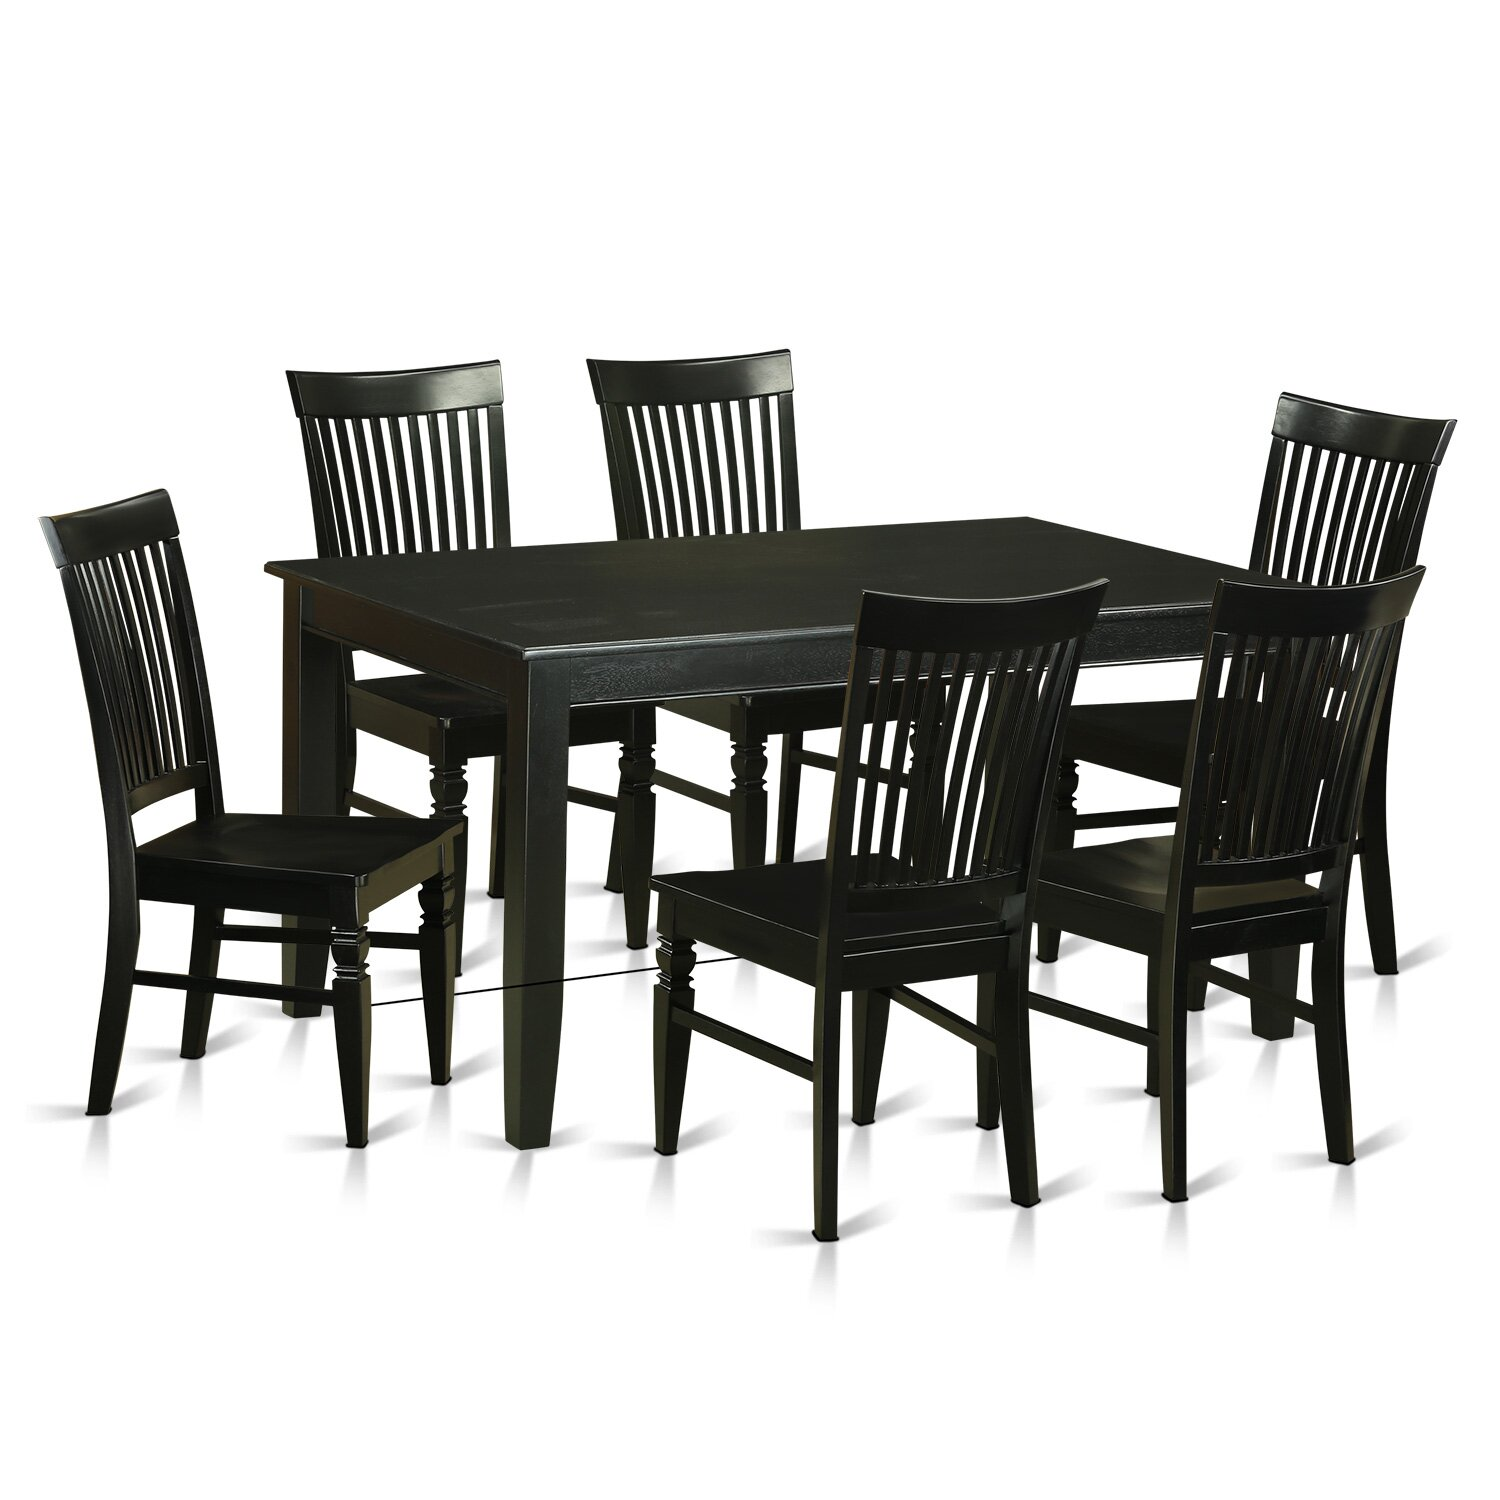 East west dudley 7 piece dining set wayfair for Dining room sets 4 chairs